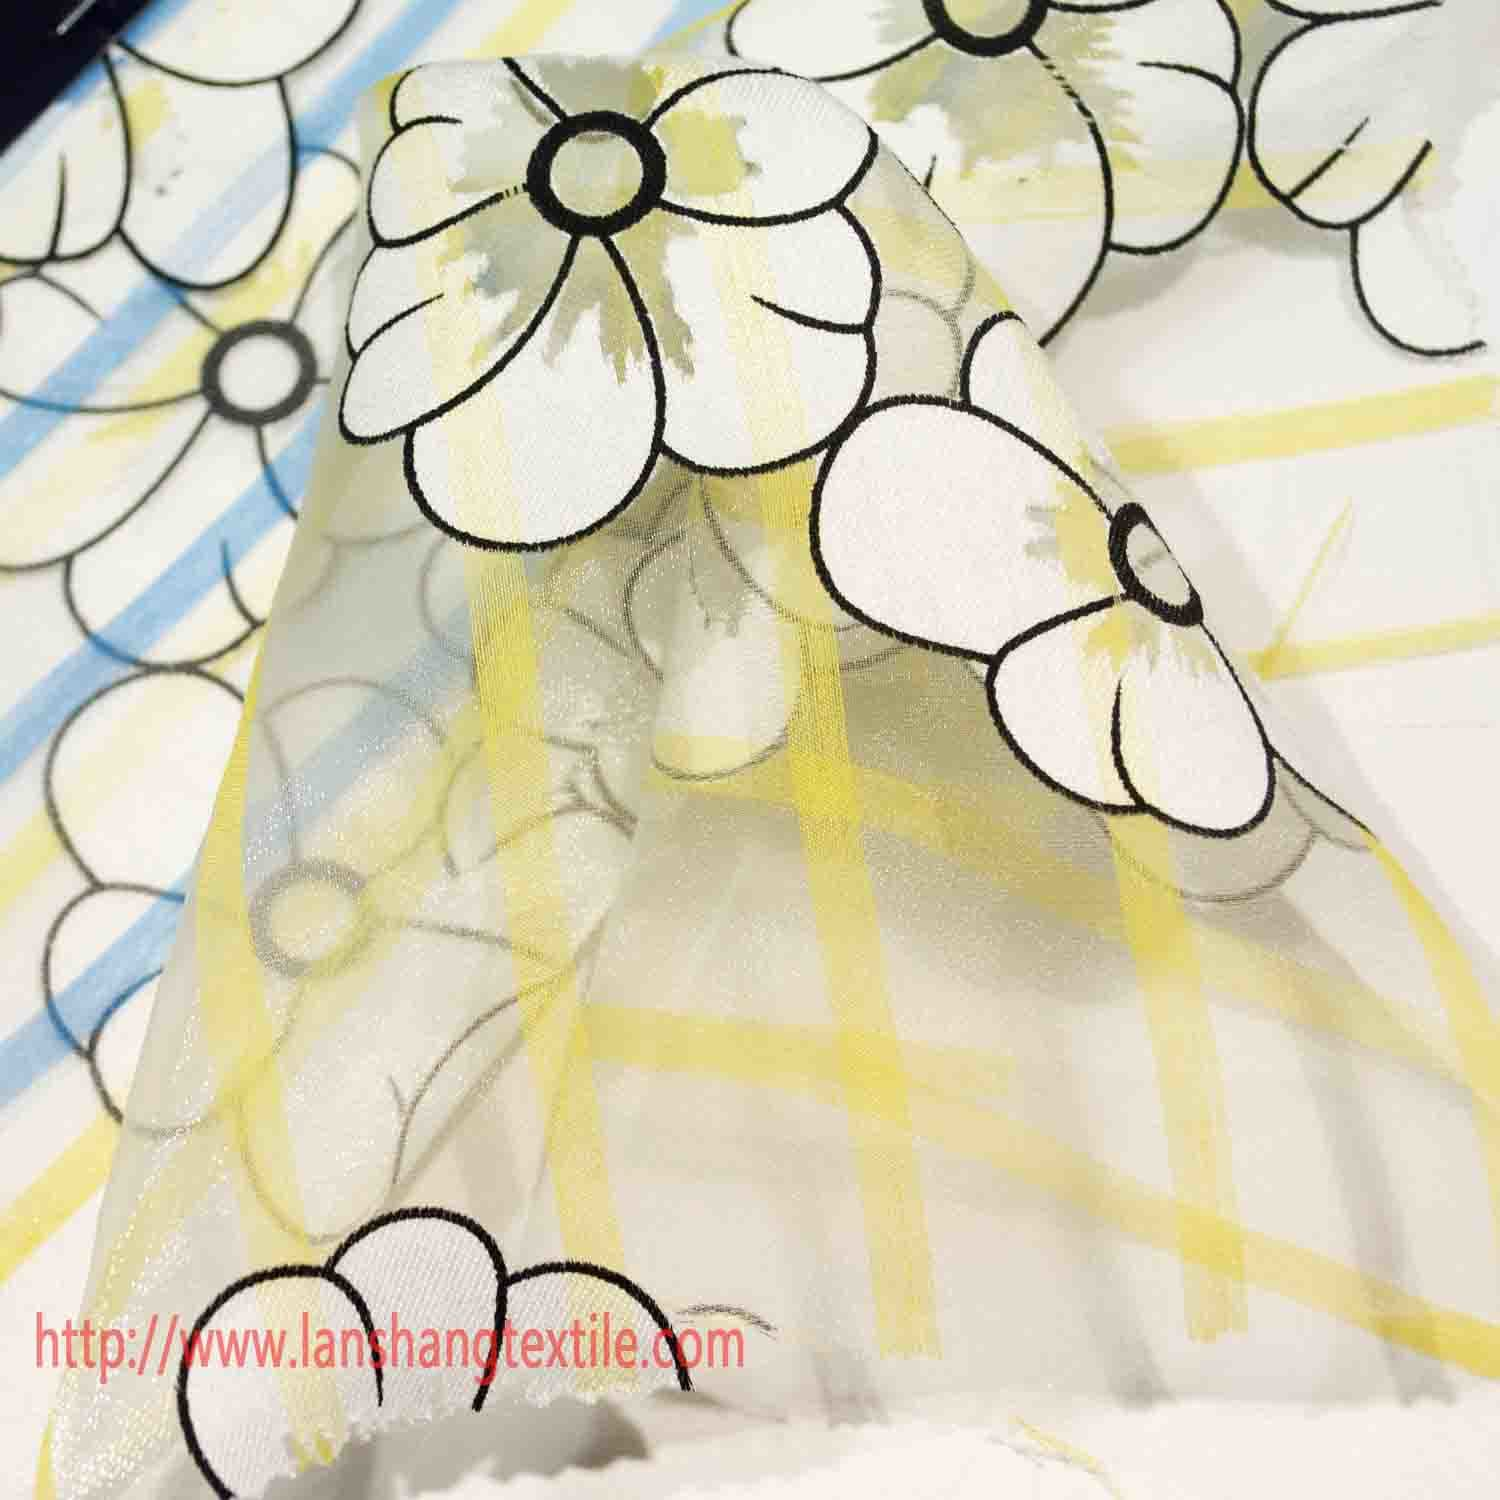 Polyester Fabric Flower Jacquard Fabric Yarn Dyed Fabric Chemical Fiber for Dress Full Dress Children Performance Wear Home Textile pictures & photos